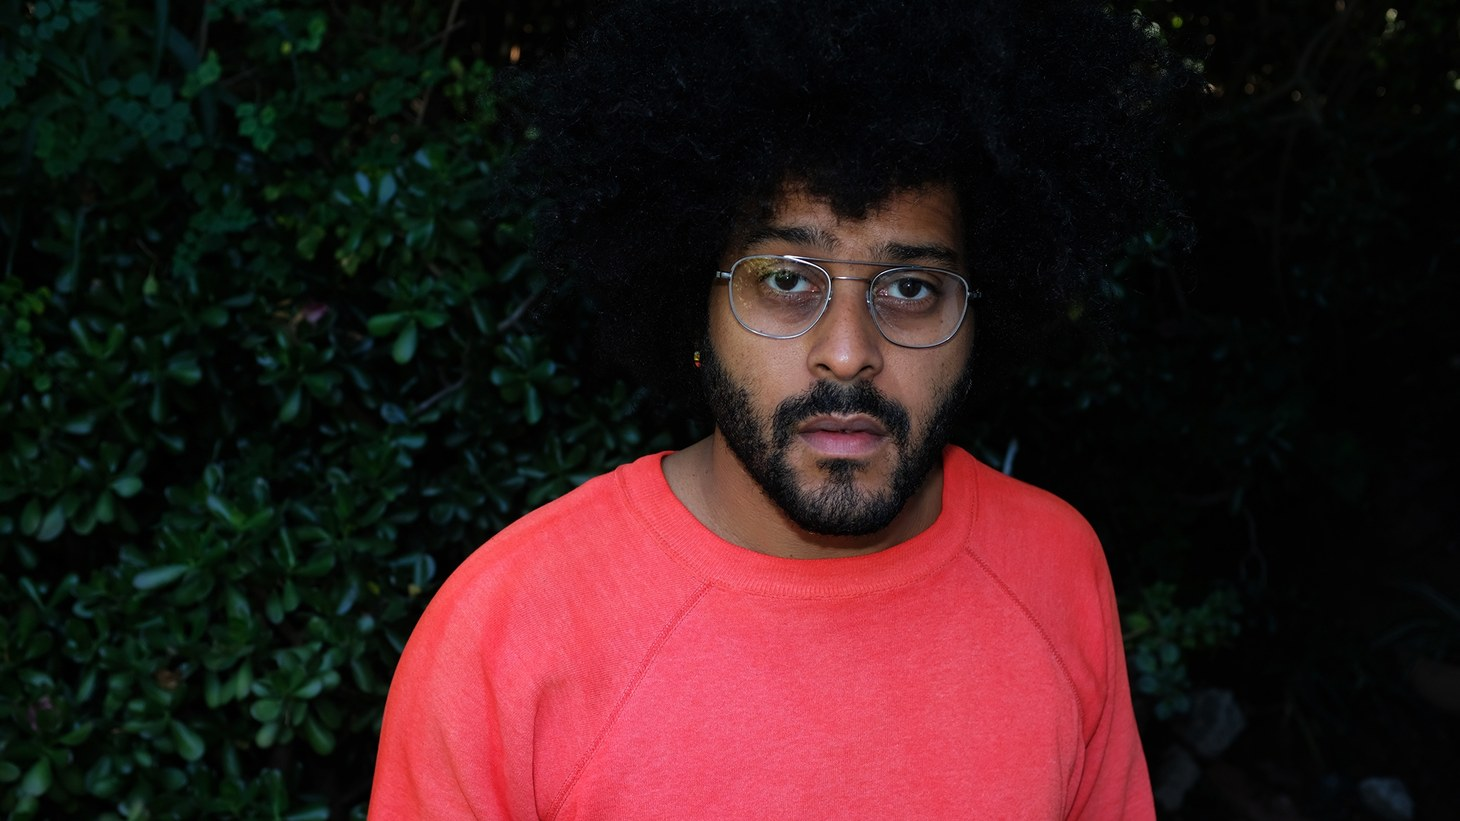 """We get a glimpse into the mind of George Lewis Jr aka Twin Shadow via his latest track """"Crushed."""" Lewis needs to take his time while he works, and we hear that in the song, as it unfolds in an intimate and delicate way."""